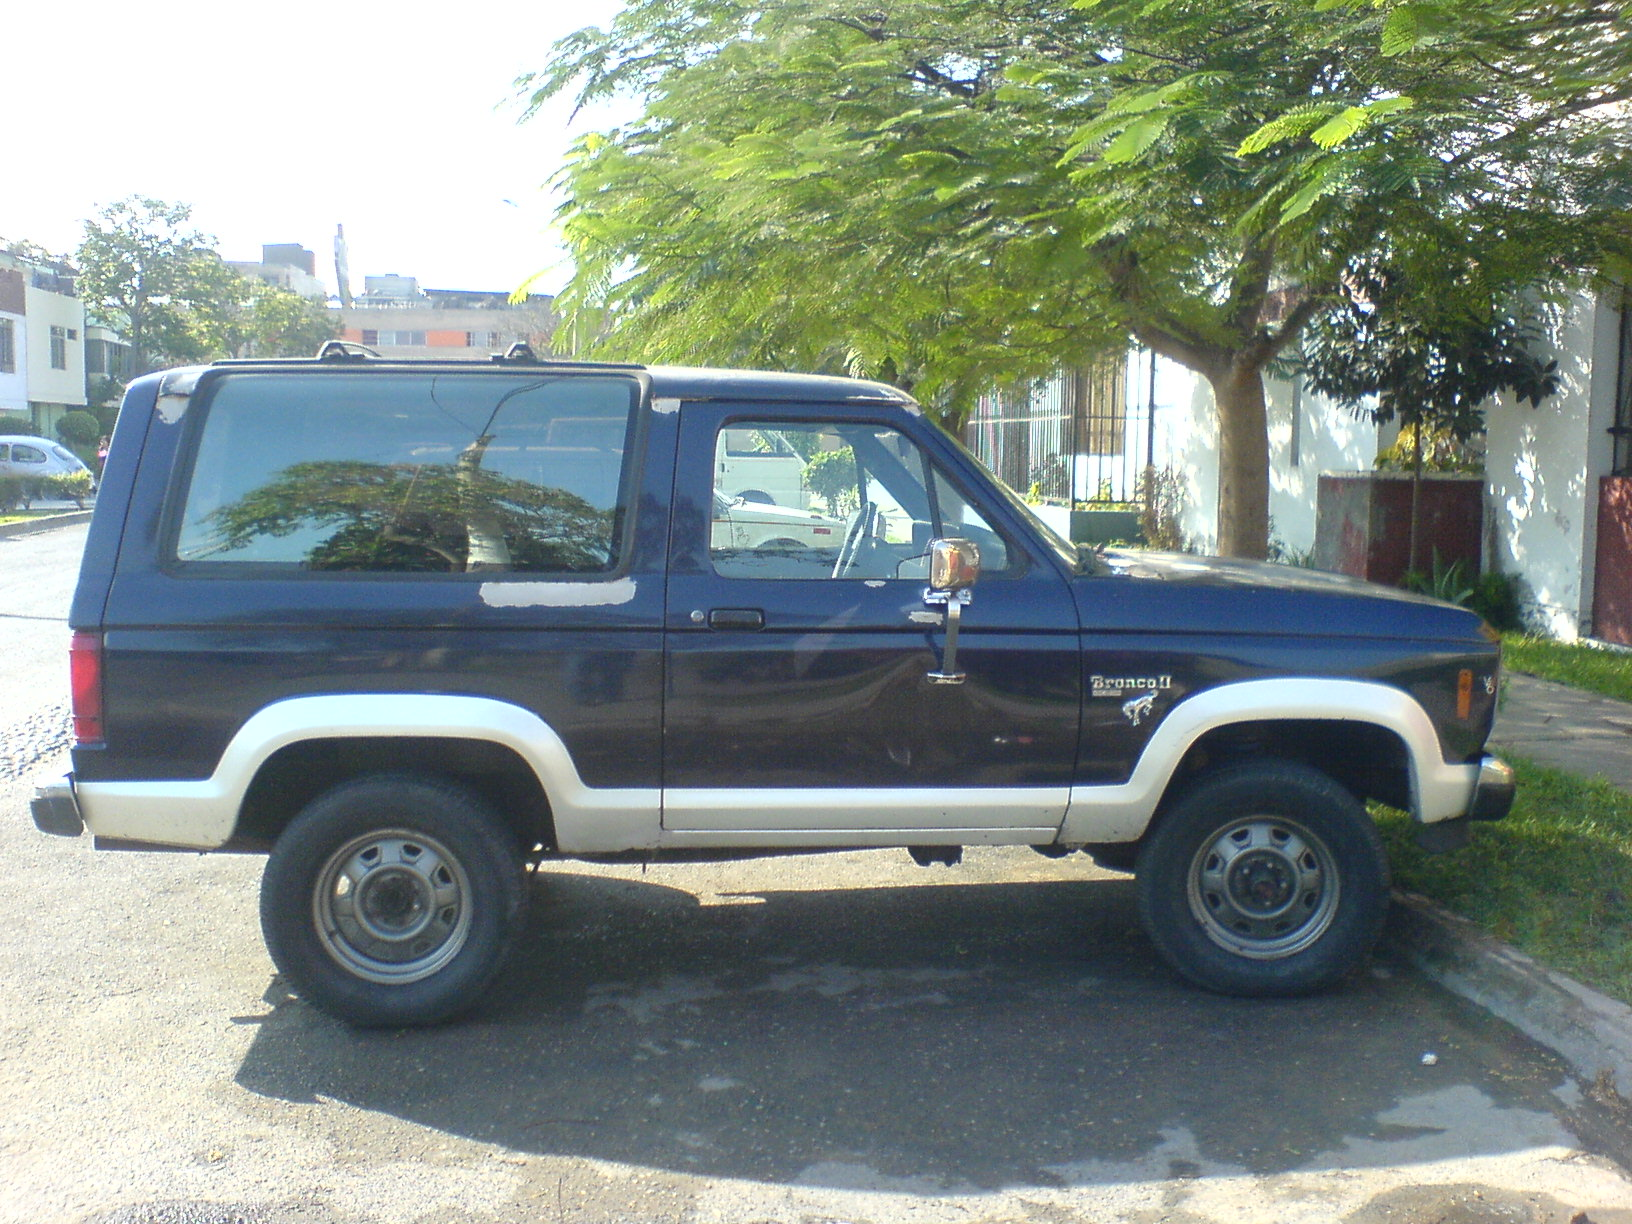 Ford Bronco Ii Information And Photos Momentcar 1989 Jeep Cherokee Wiring  Diagram 1986 Ford Bronco Ii Wiring Diagram